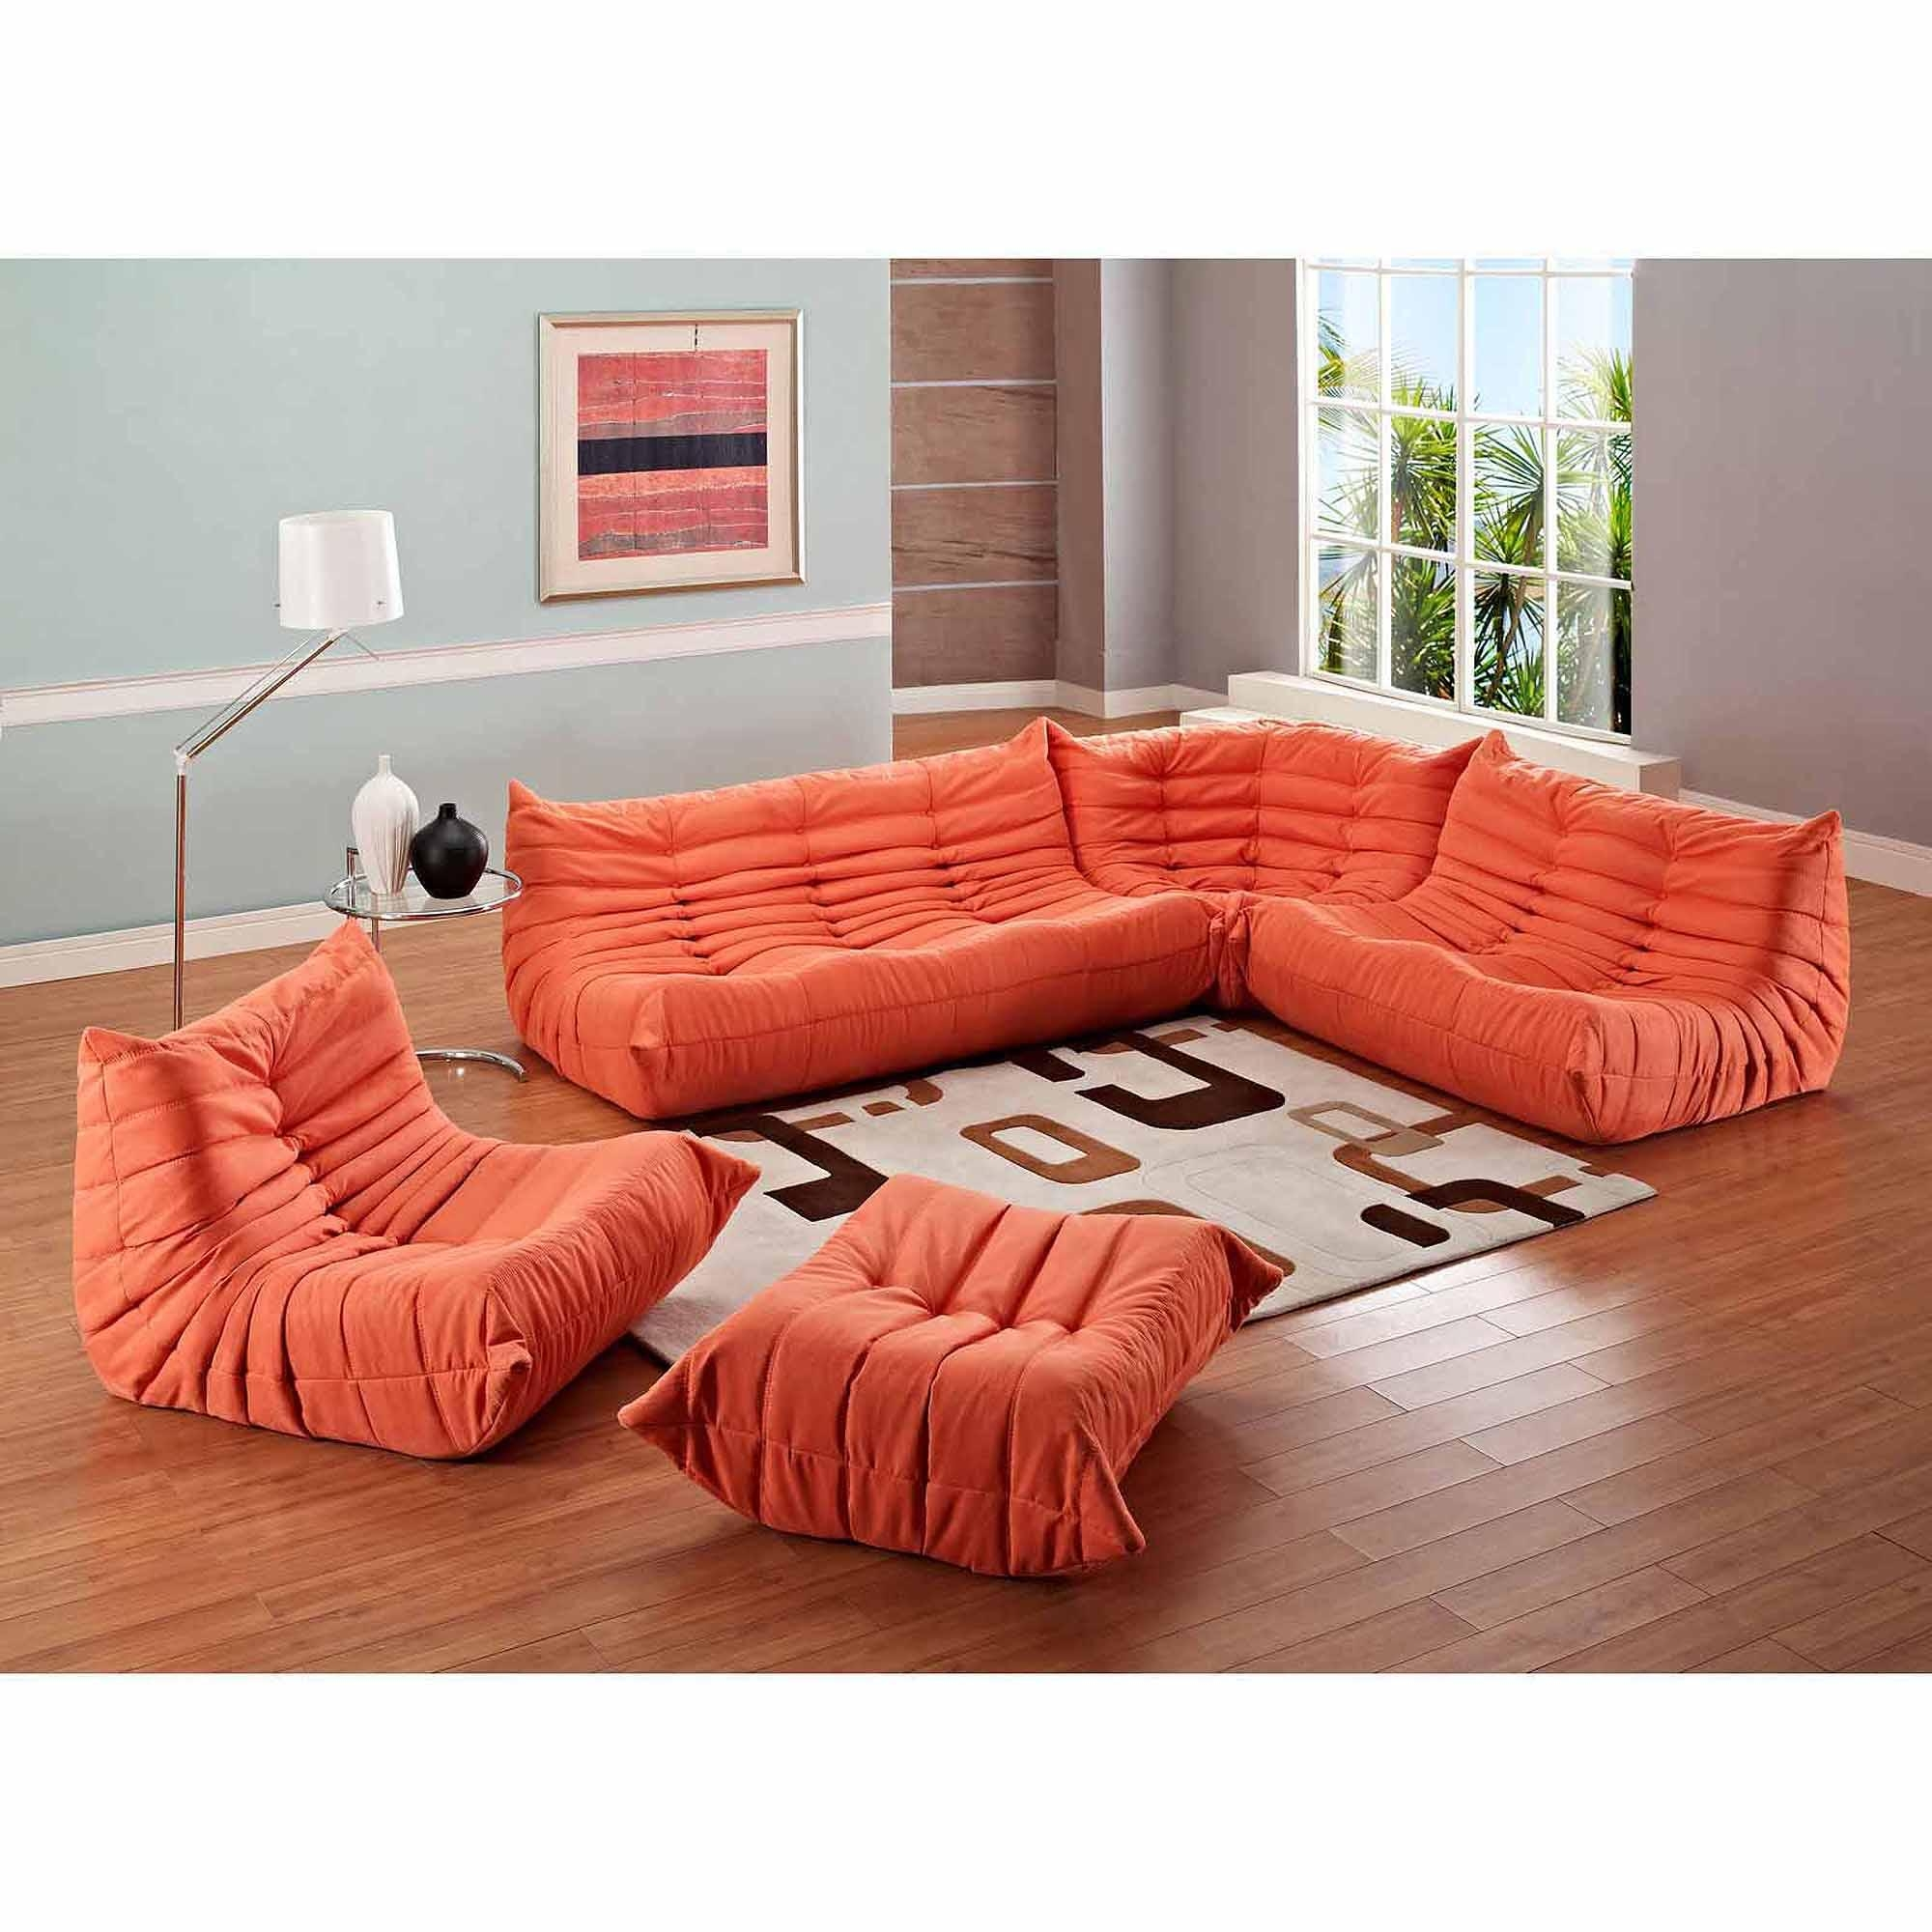 Modway Waverunner Modular Sectional Sofa Set (5 Piece) – Walmart Intended For Orange Sectional Sofas (View 16 of 20)